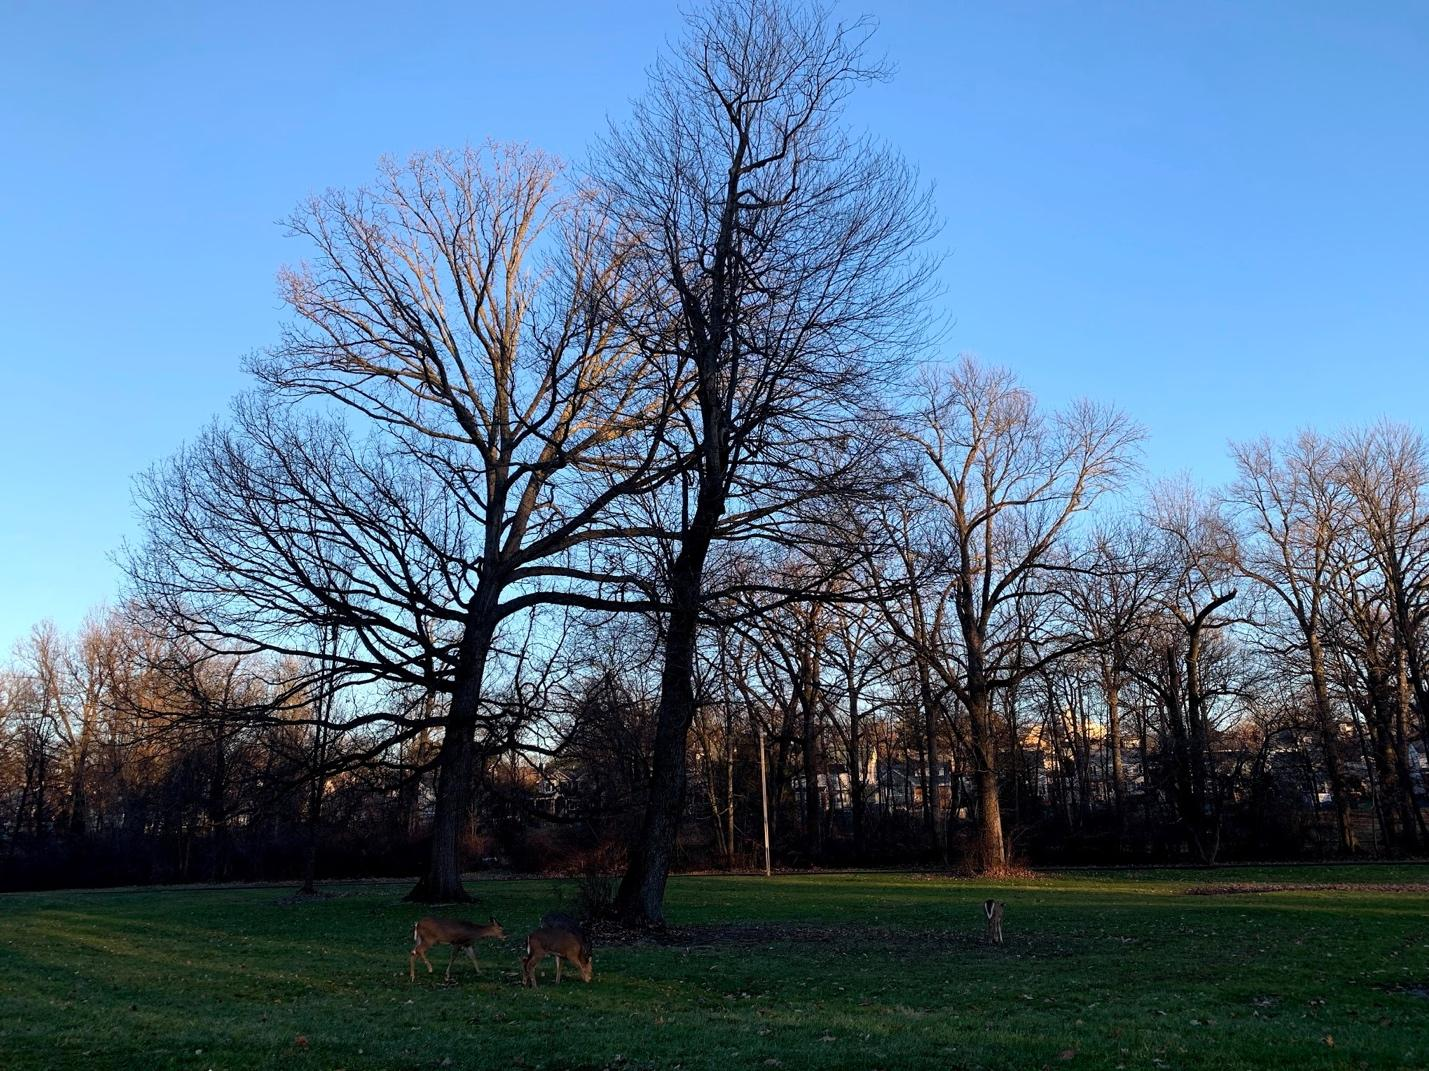 Four deer in a grassy area with winter trees. The sky is bright blue.